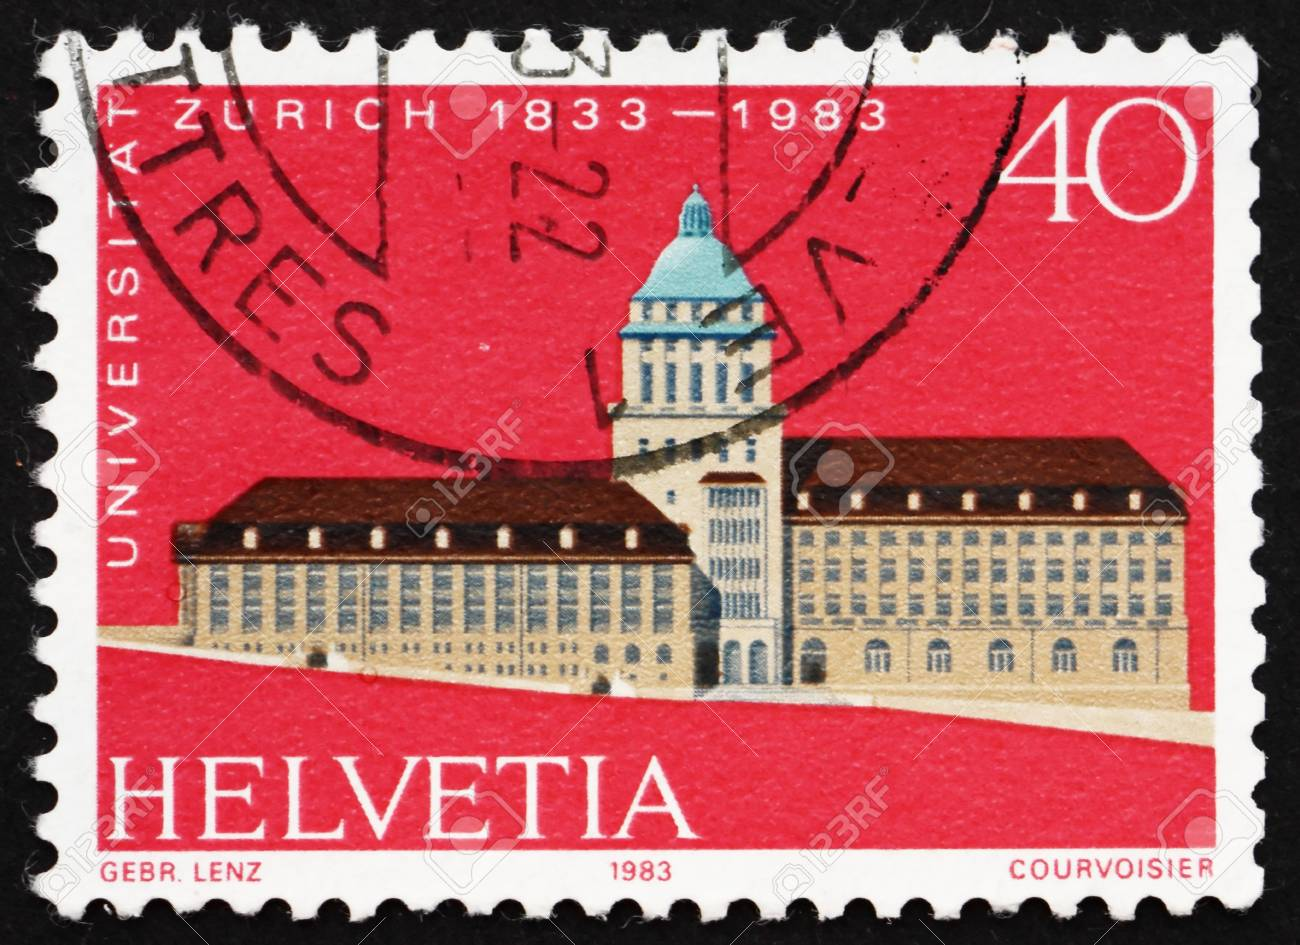 SWITZERLAND - CIRCA 1983: a stamp printed in the Switzerland shows Zurich University, Sesquicentennial, circa 1983 Stock Photo - 14143113